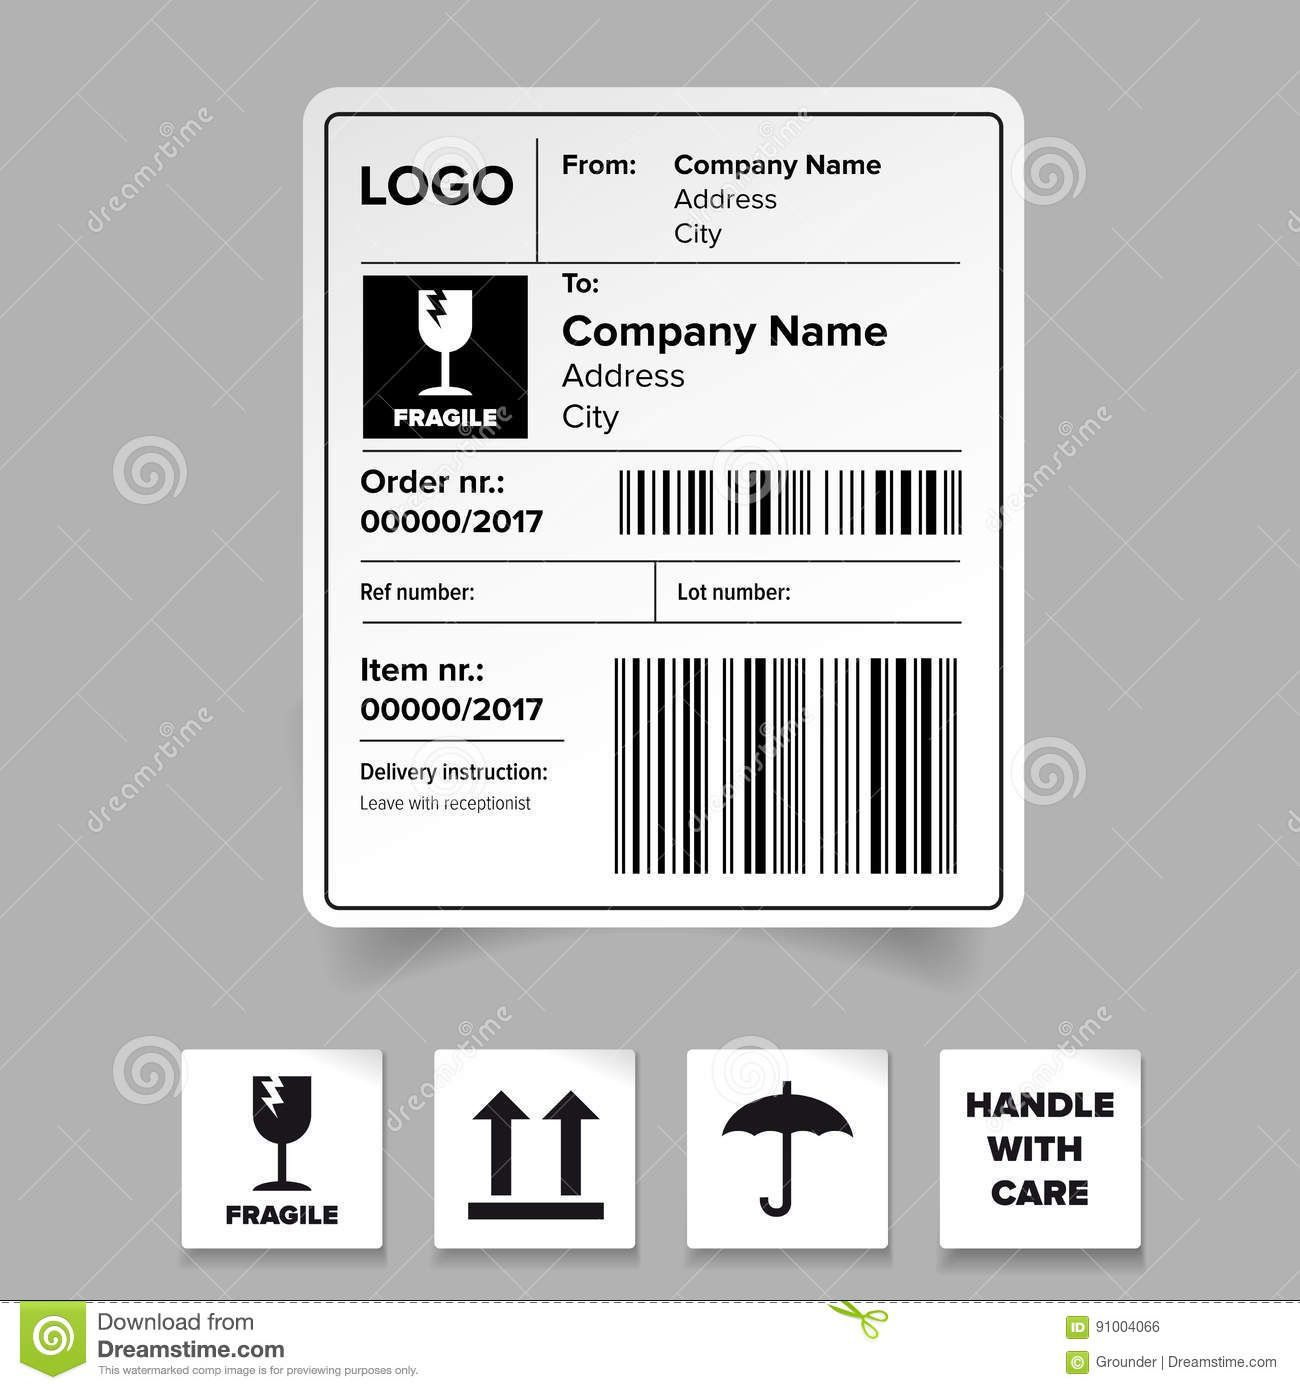 008 Remarkable Free Shipping Label Template Idea  Format Word For MacFull